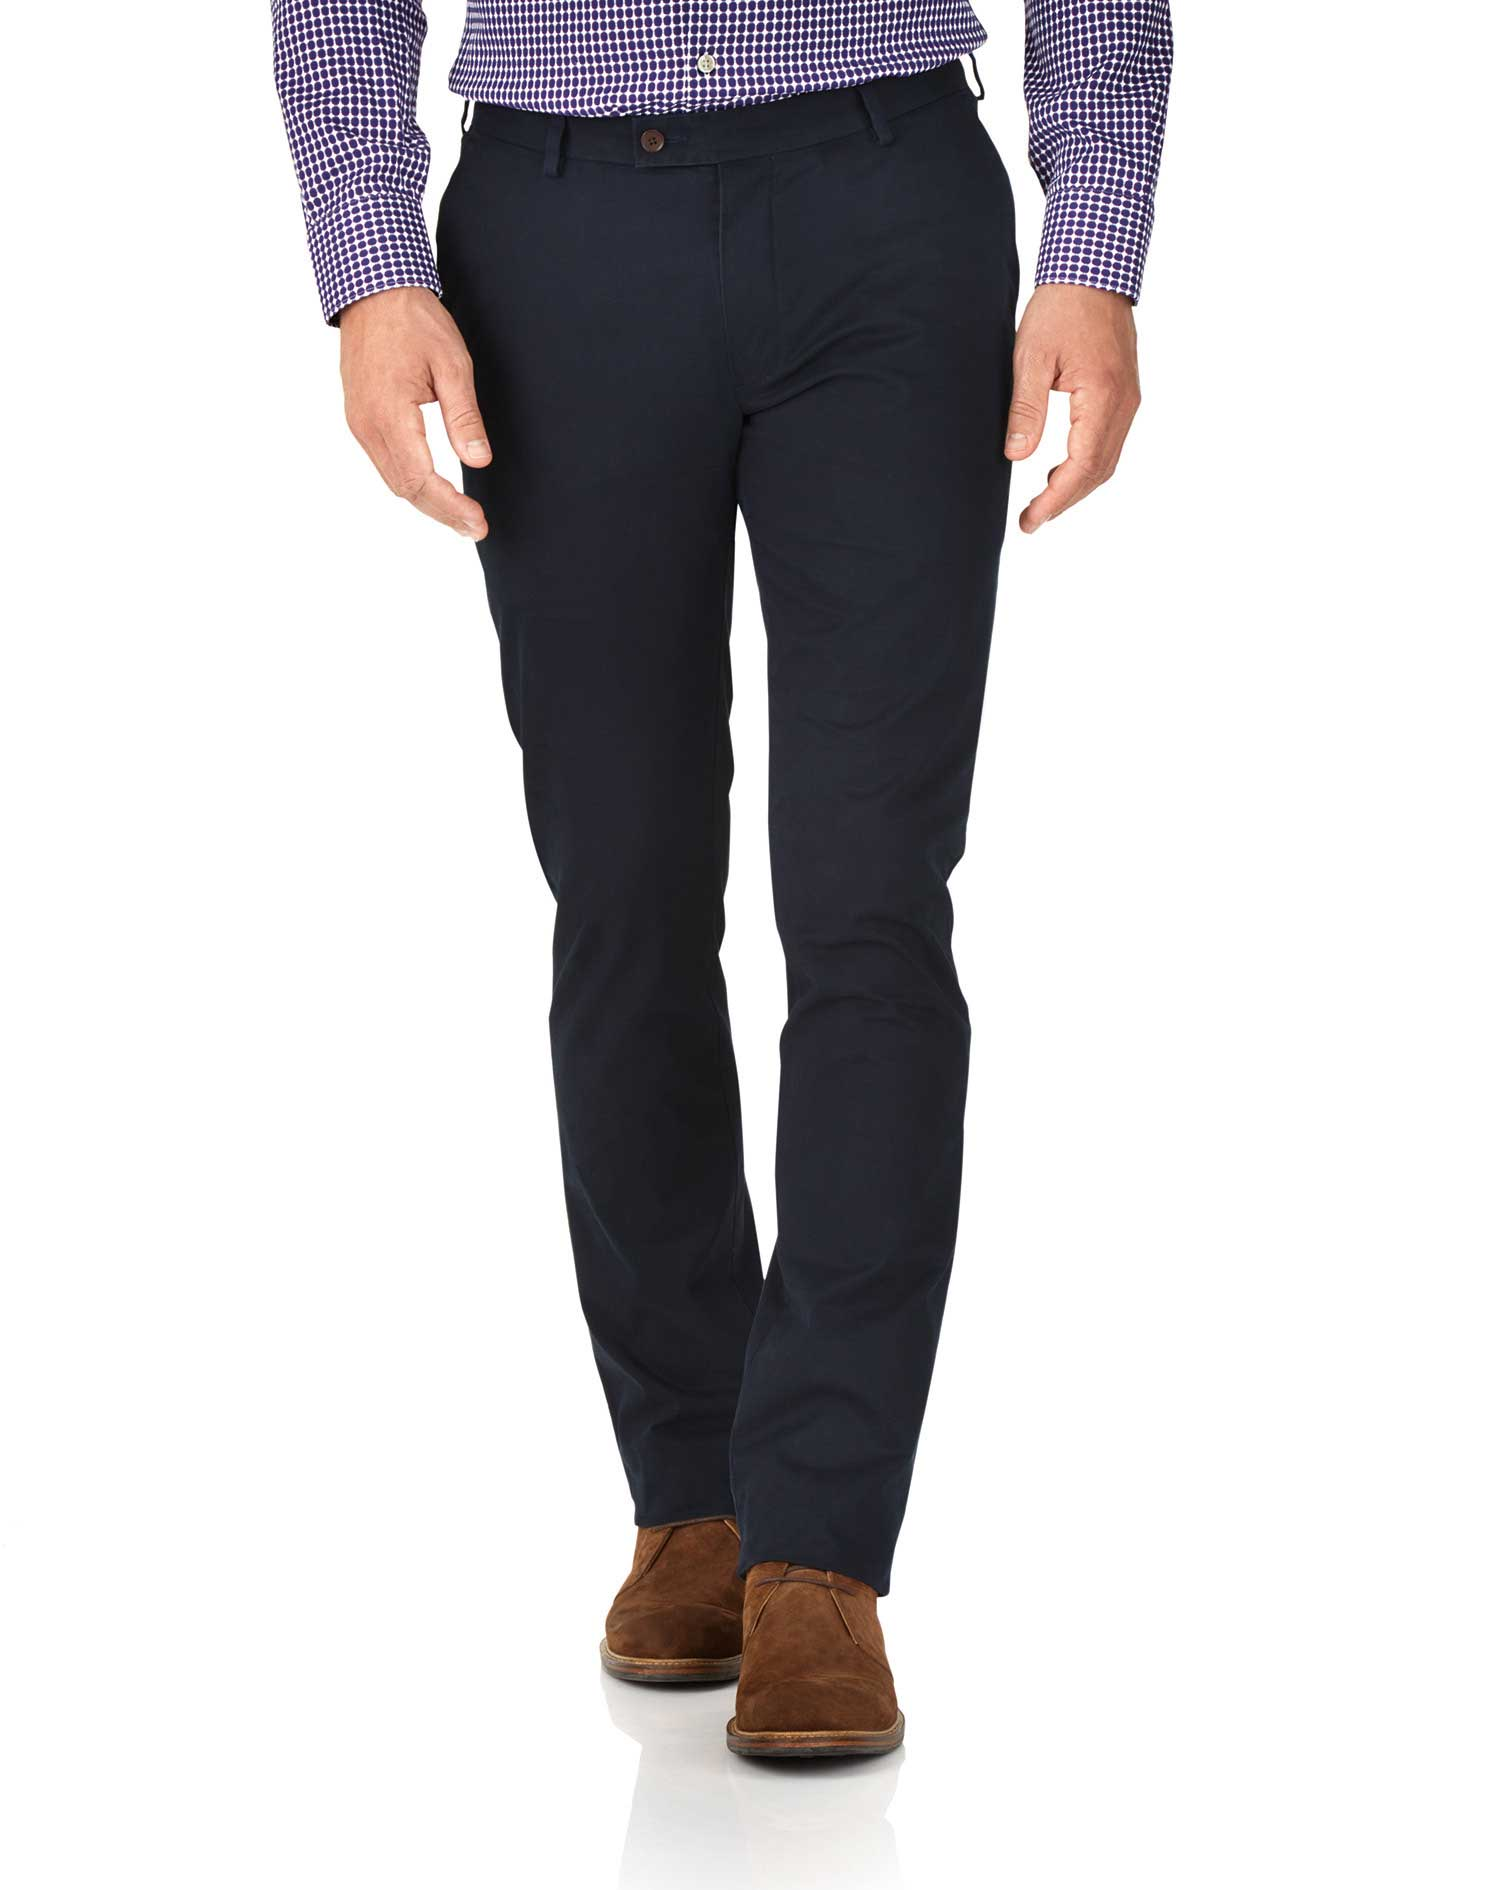 Navy Extra Slim Fit Stretch Cotton Chino Trousers Size W32 L32 by Charles Tyrwhitt